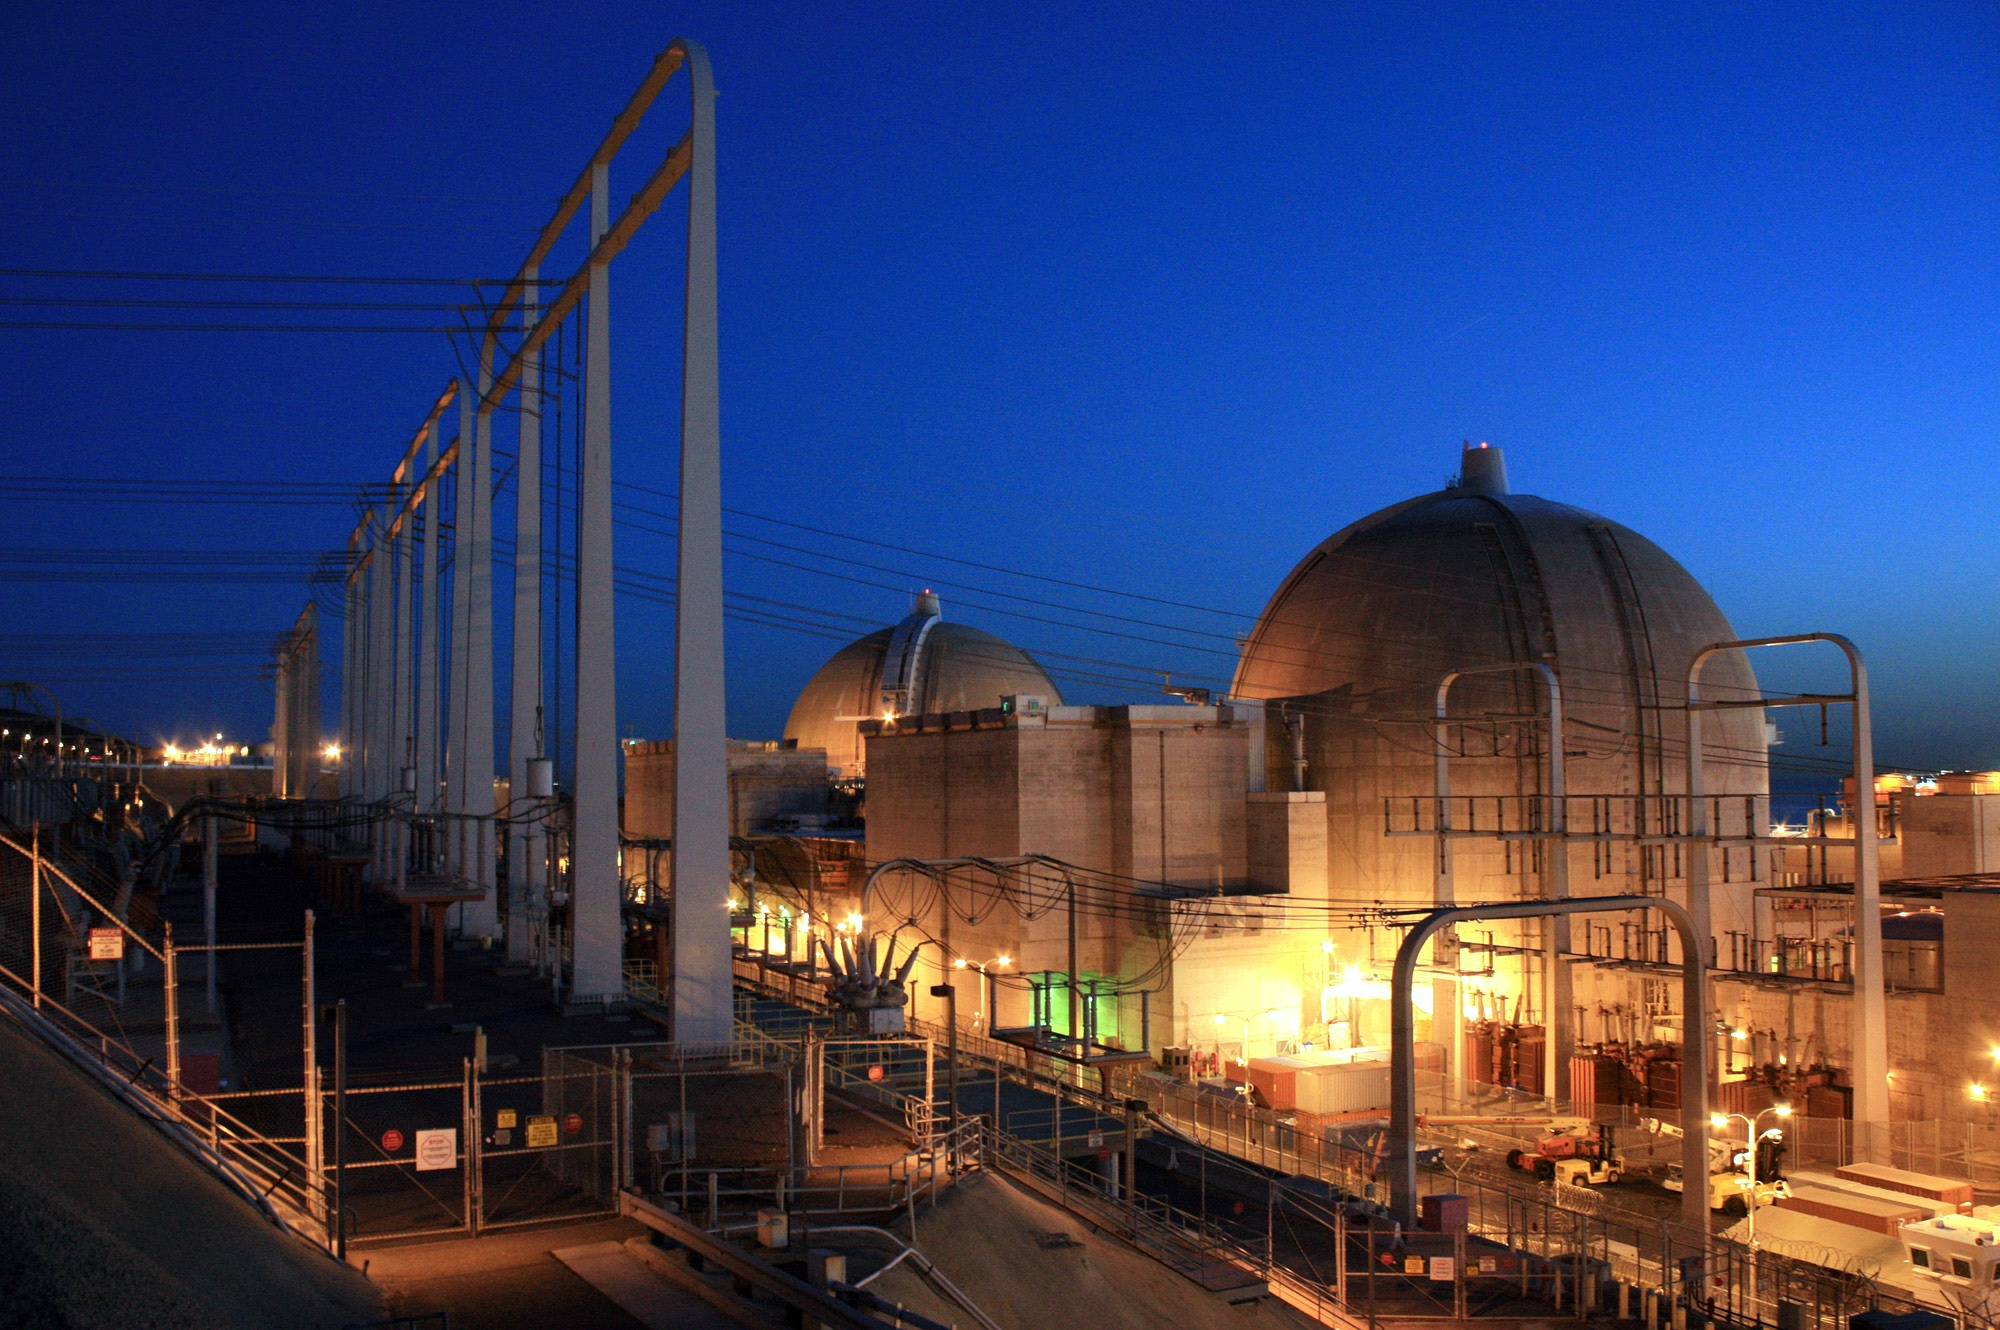 San ofre Nuclear Generating Station – Enformable